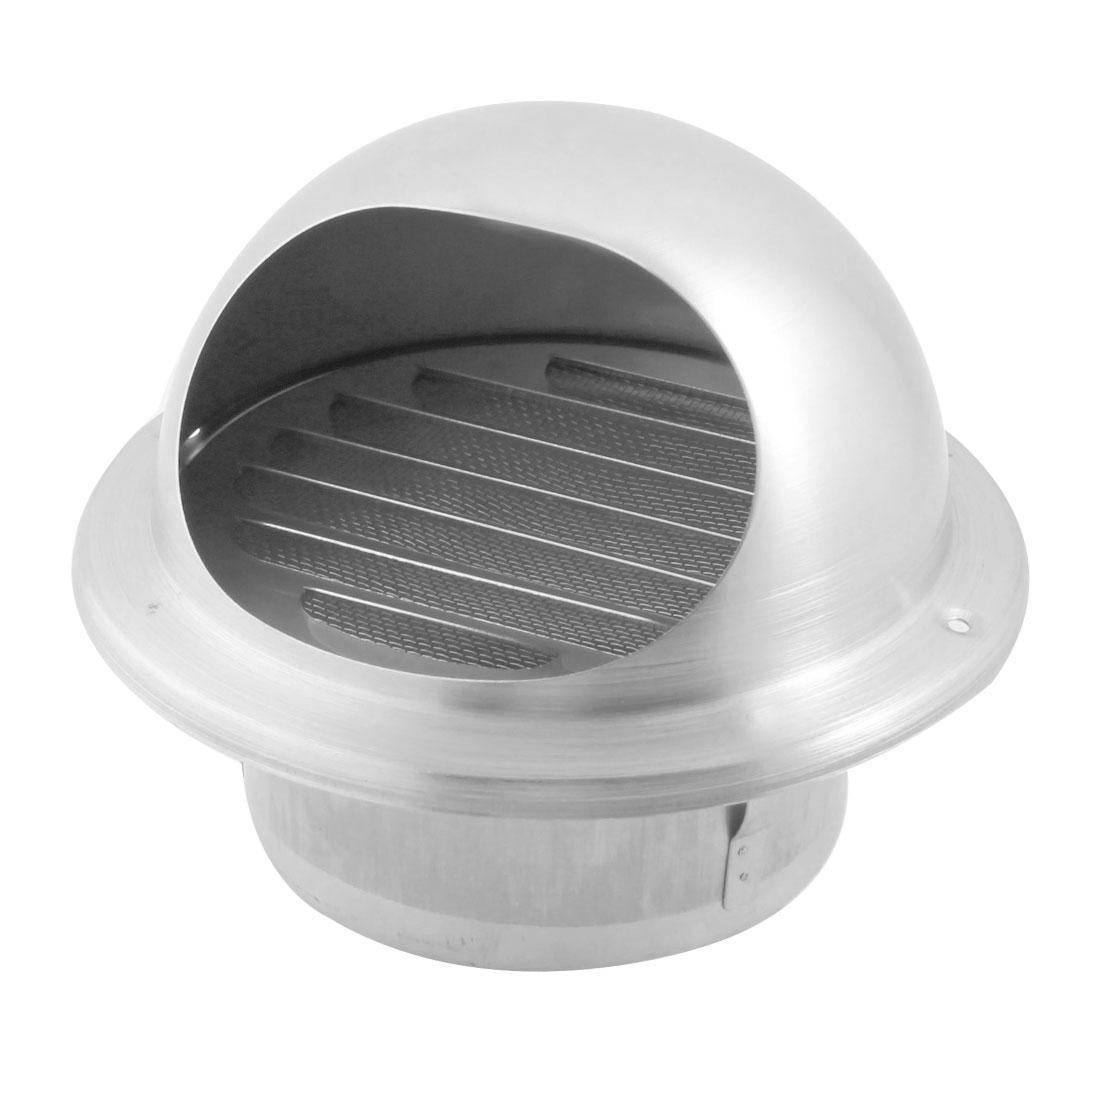 Kitchen Roof Extractor Fan 304 Grade Stainless Steel Air Vent Outlet Grill w Mesh Louver for 100mm Dia Ducting